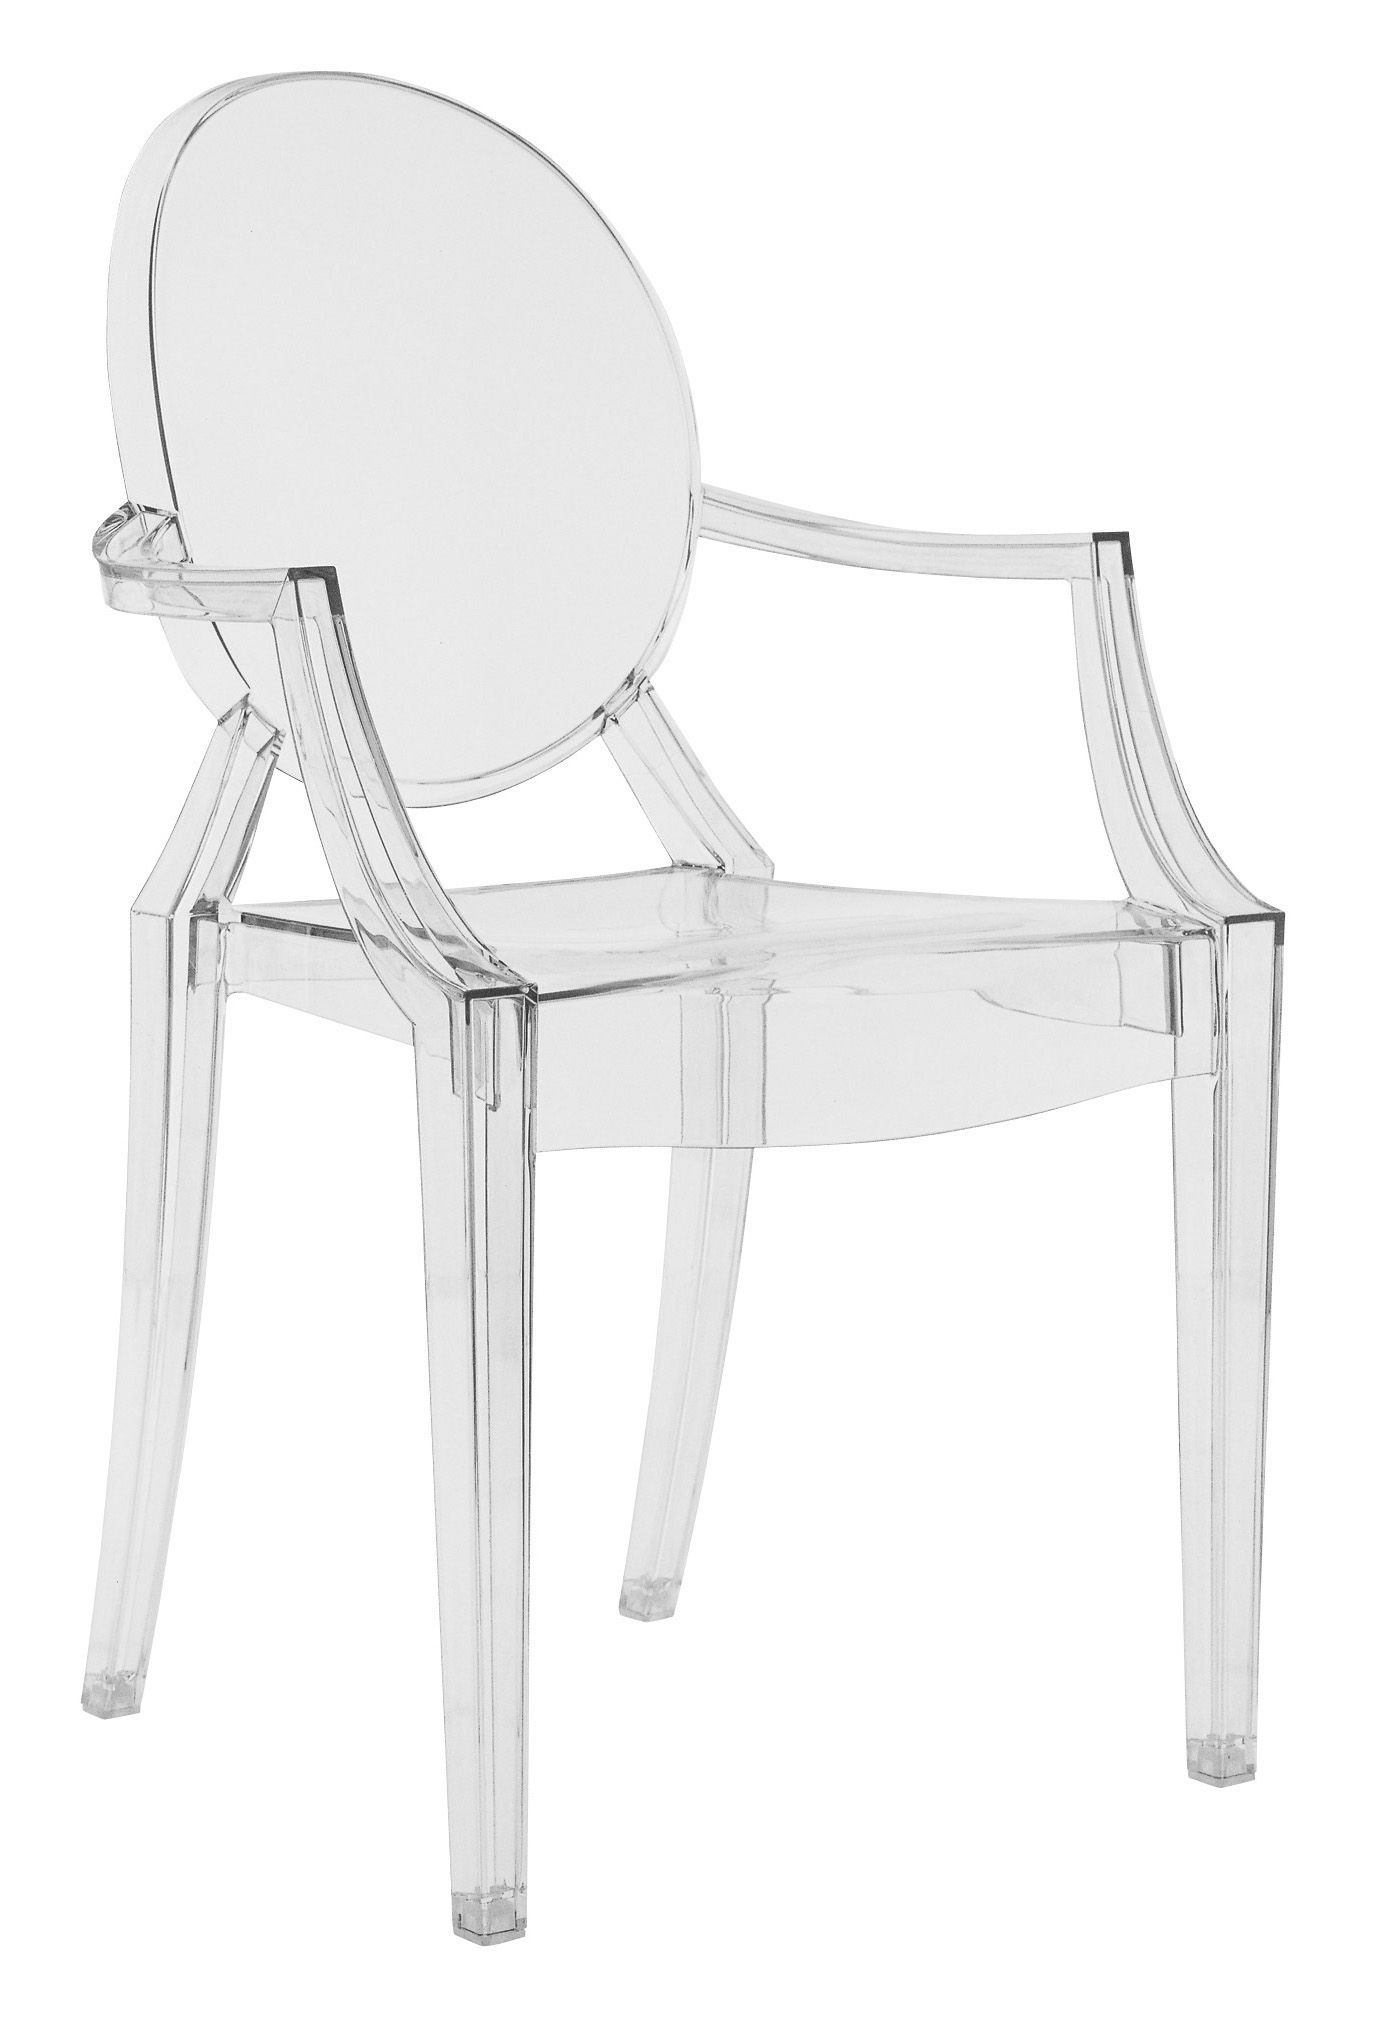 Silla Louis Ghost Fauteuil Louis Ghost Kartell Made In Design